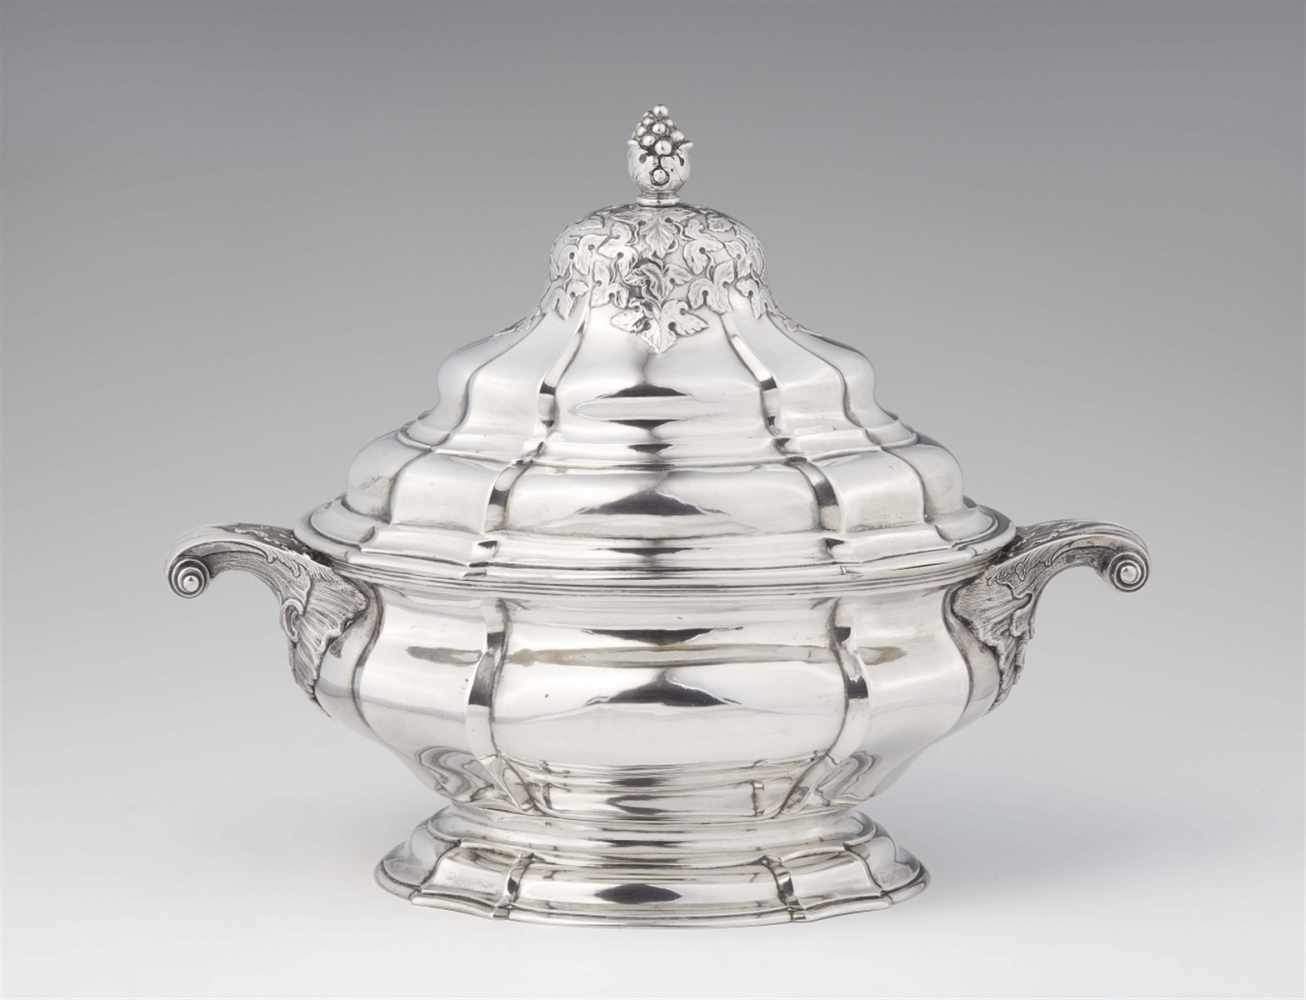 Lot 313 - An important Reval silver tureen and coverA bombé form interior gilt oval tureen with handles to